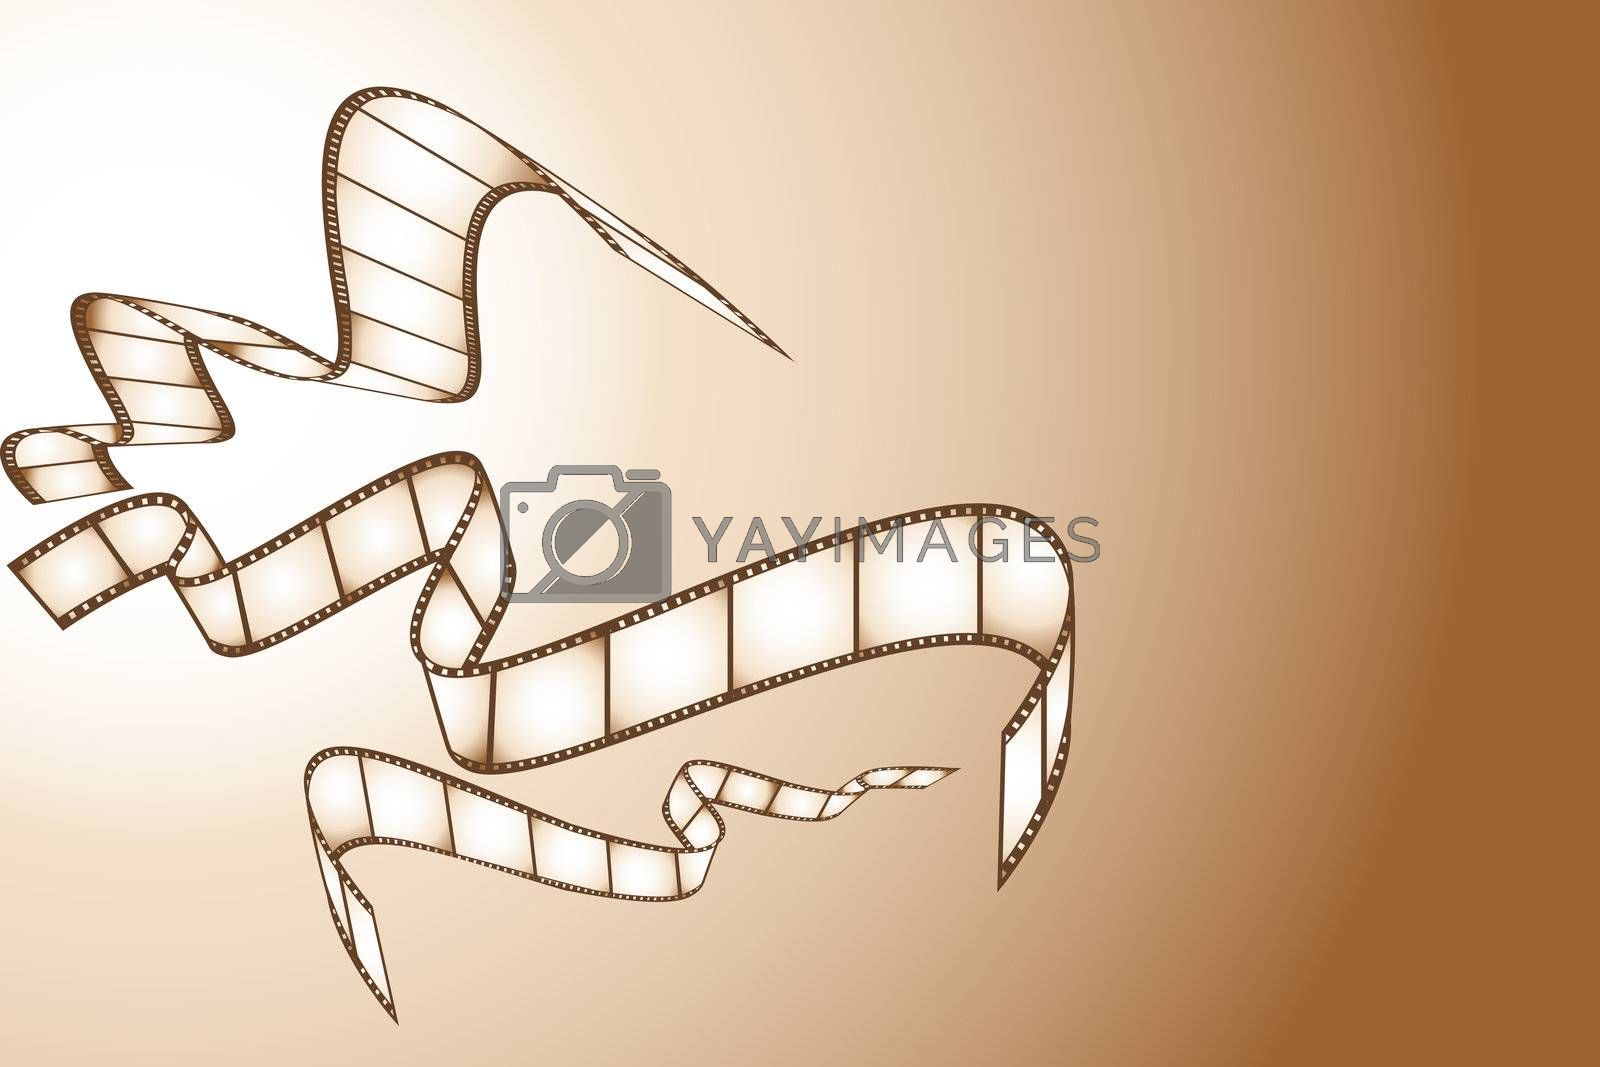 illustration of movie reel on abstract background